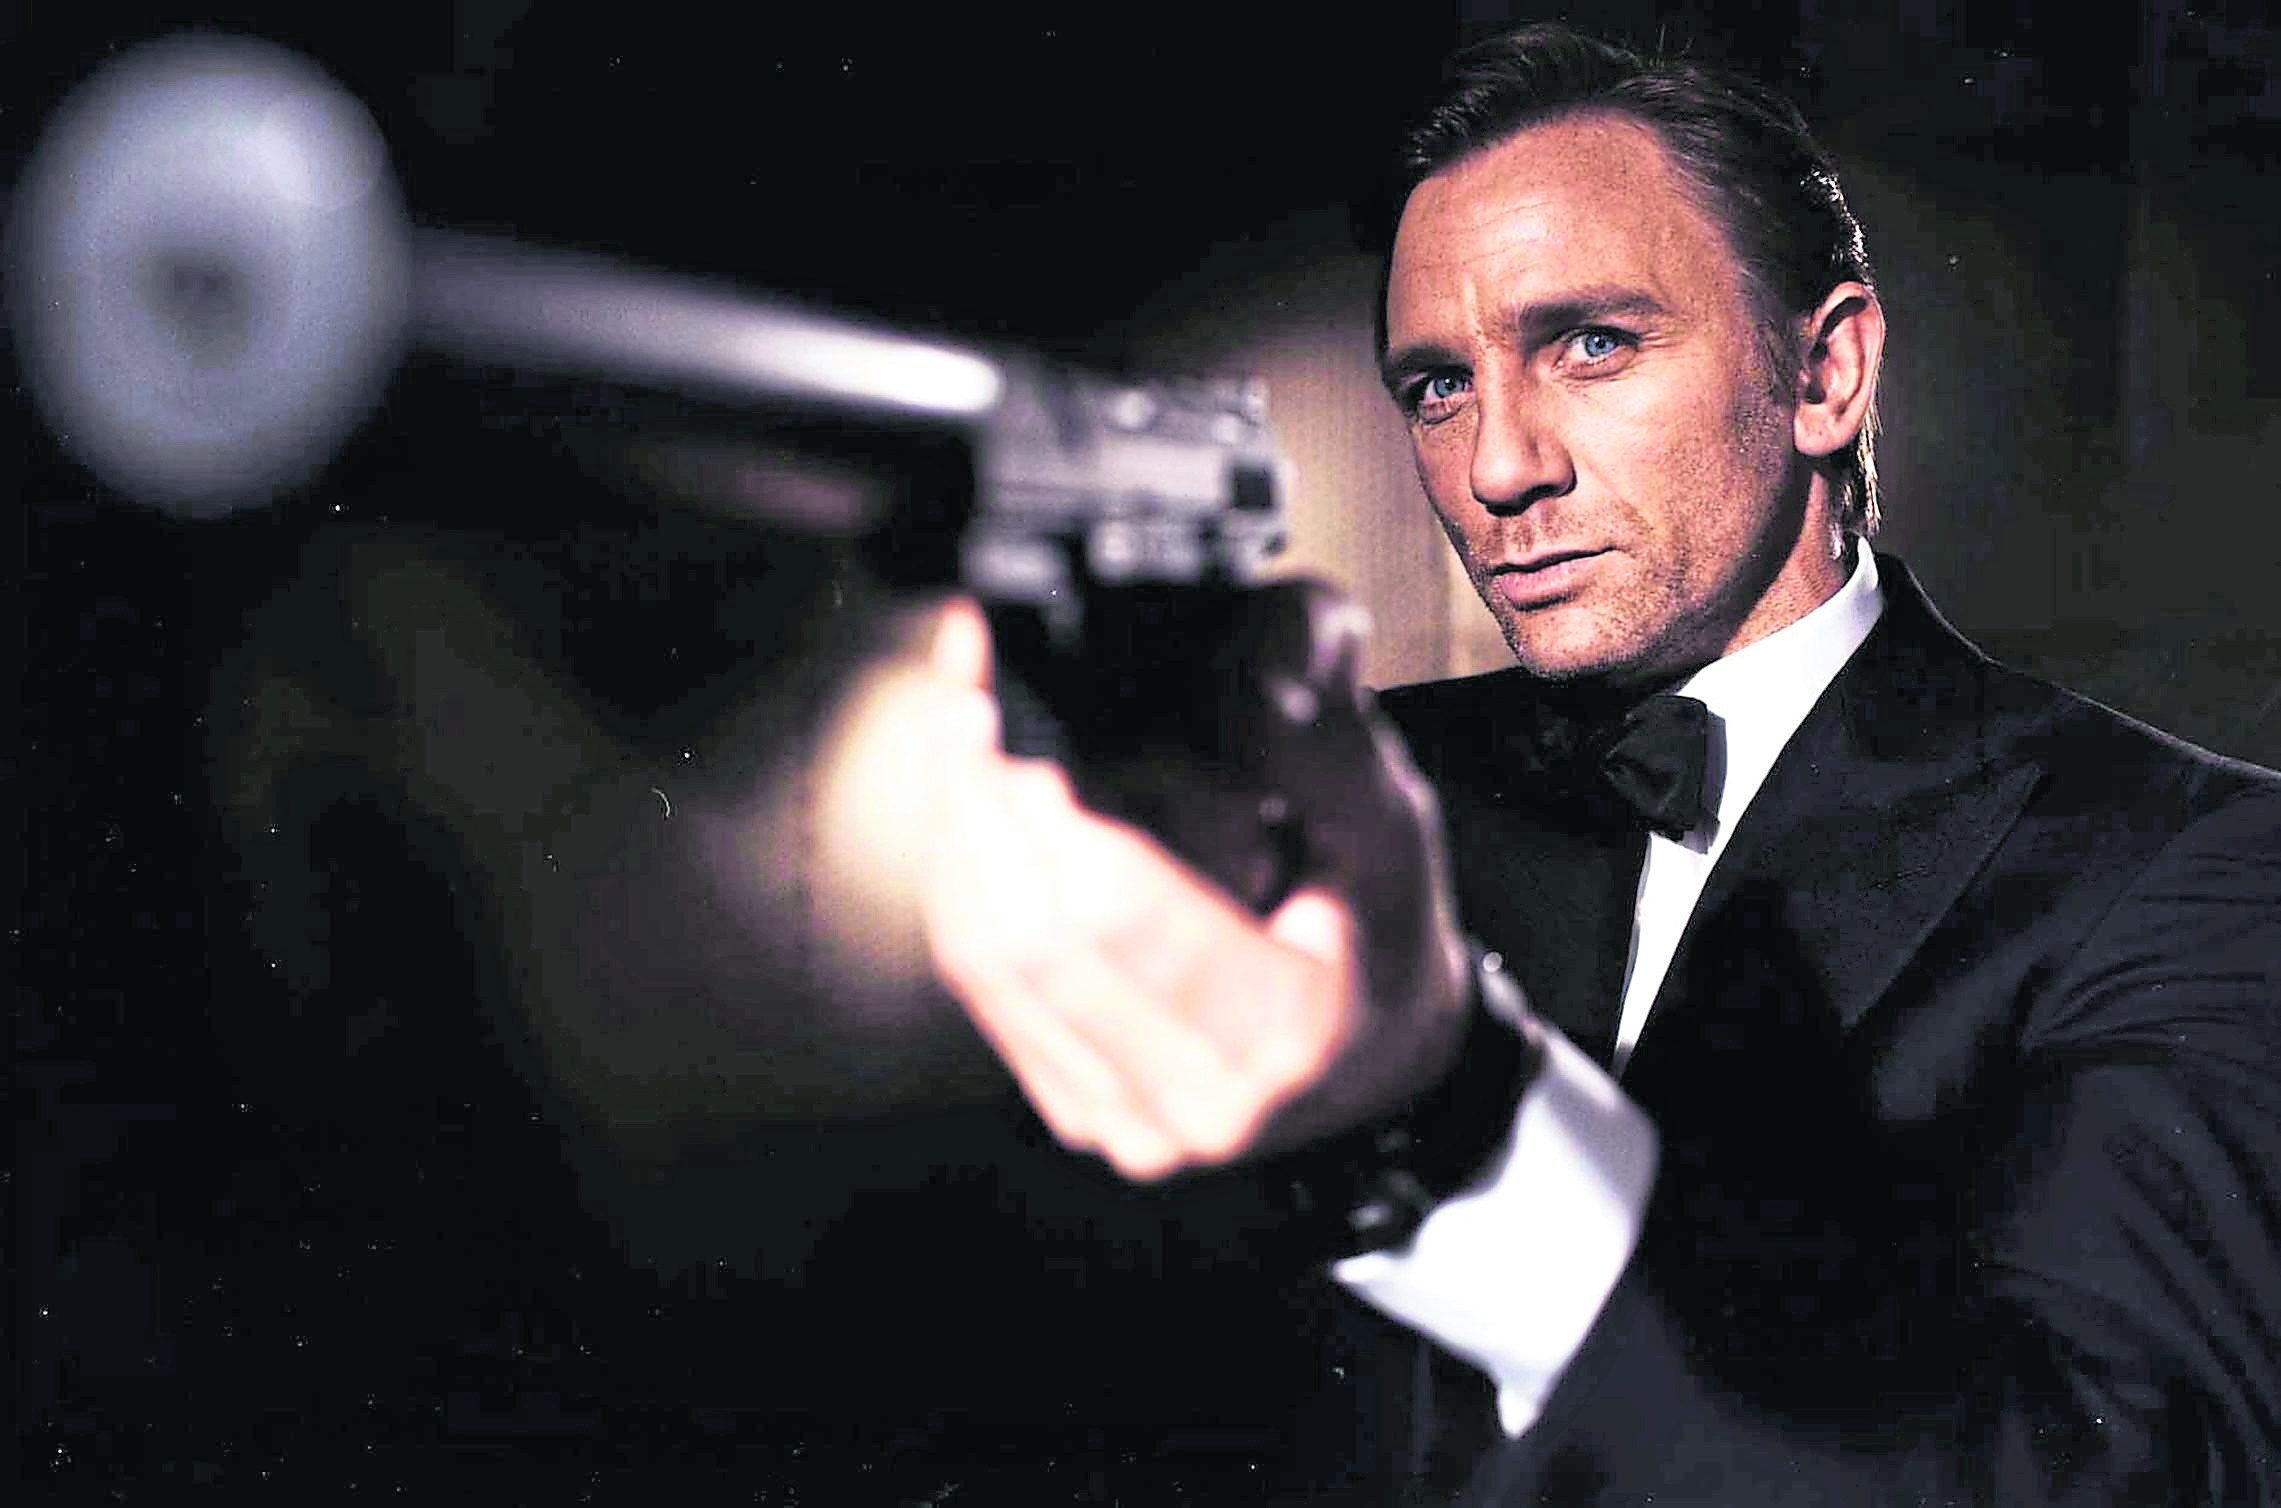 Daniel Craig in his final outing as James Bond in the upcoming film No Time to Die